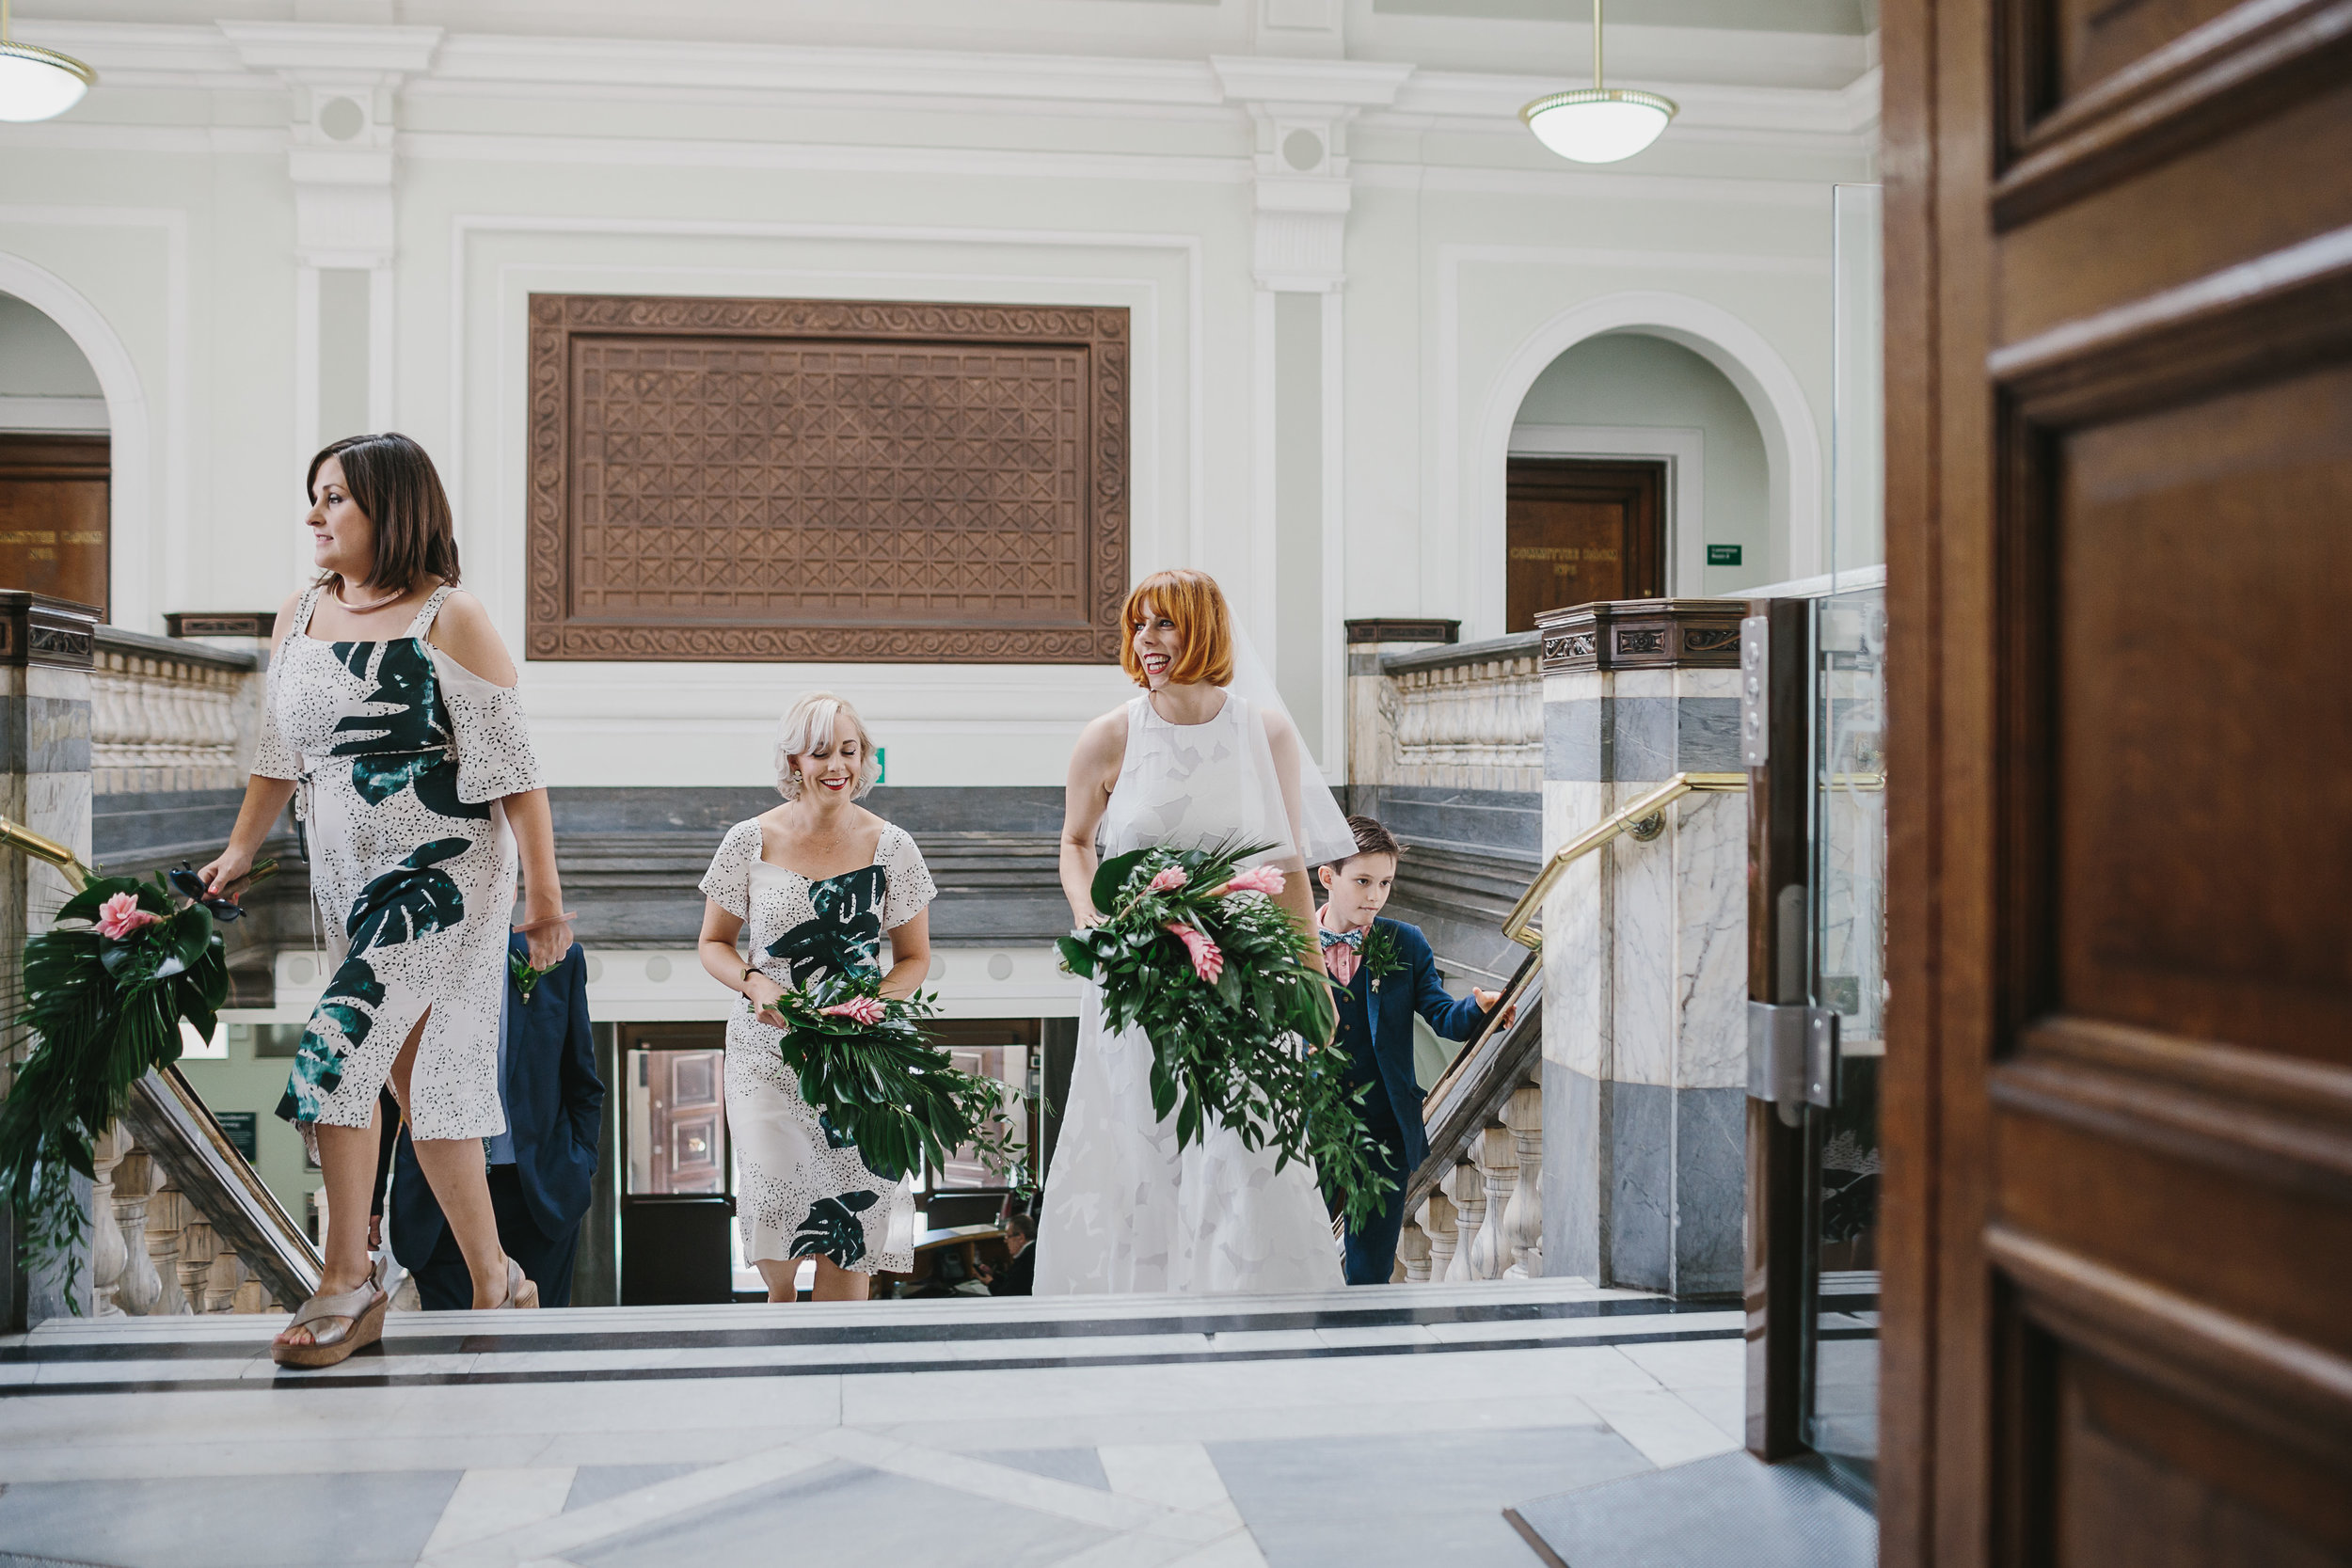 Islington_Town_Hall_Wedding_16.JPG